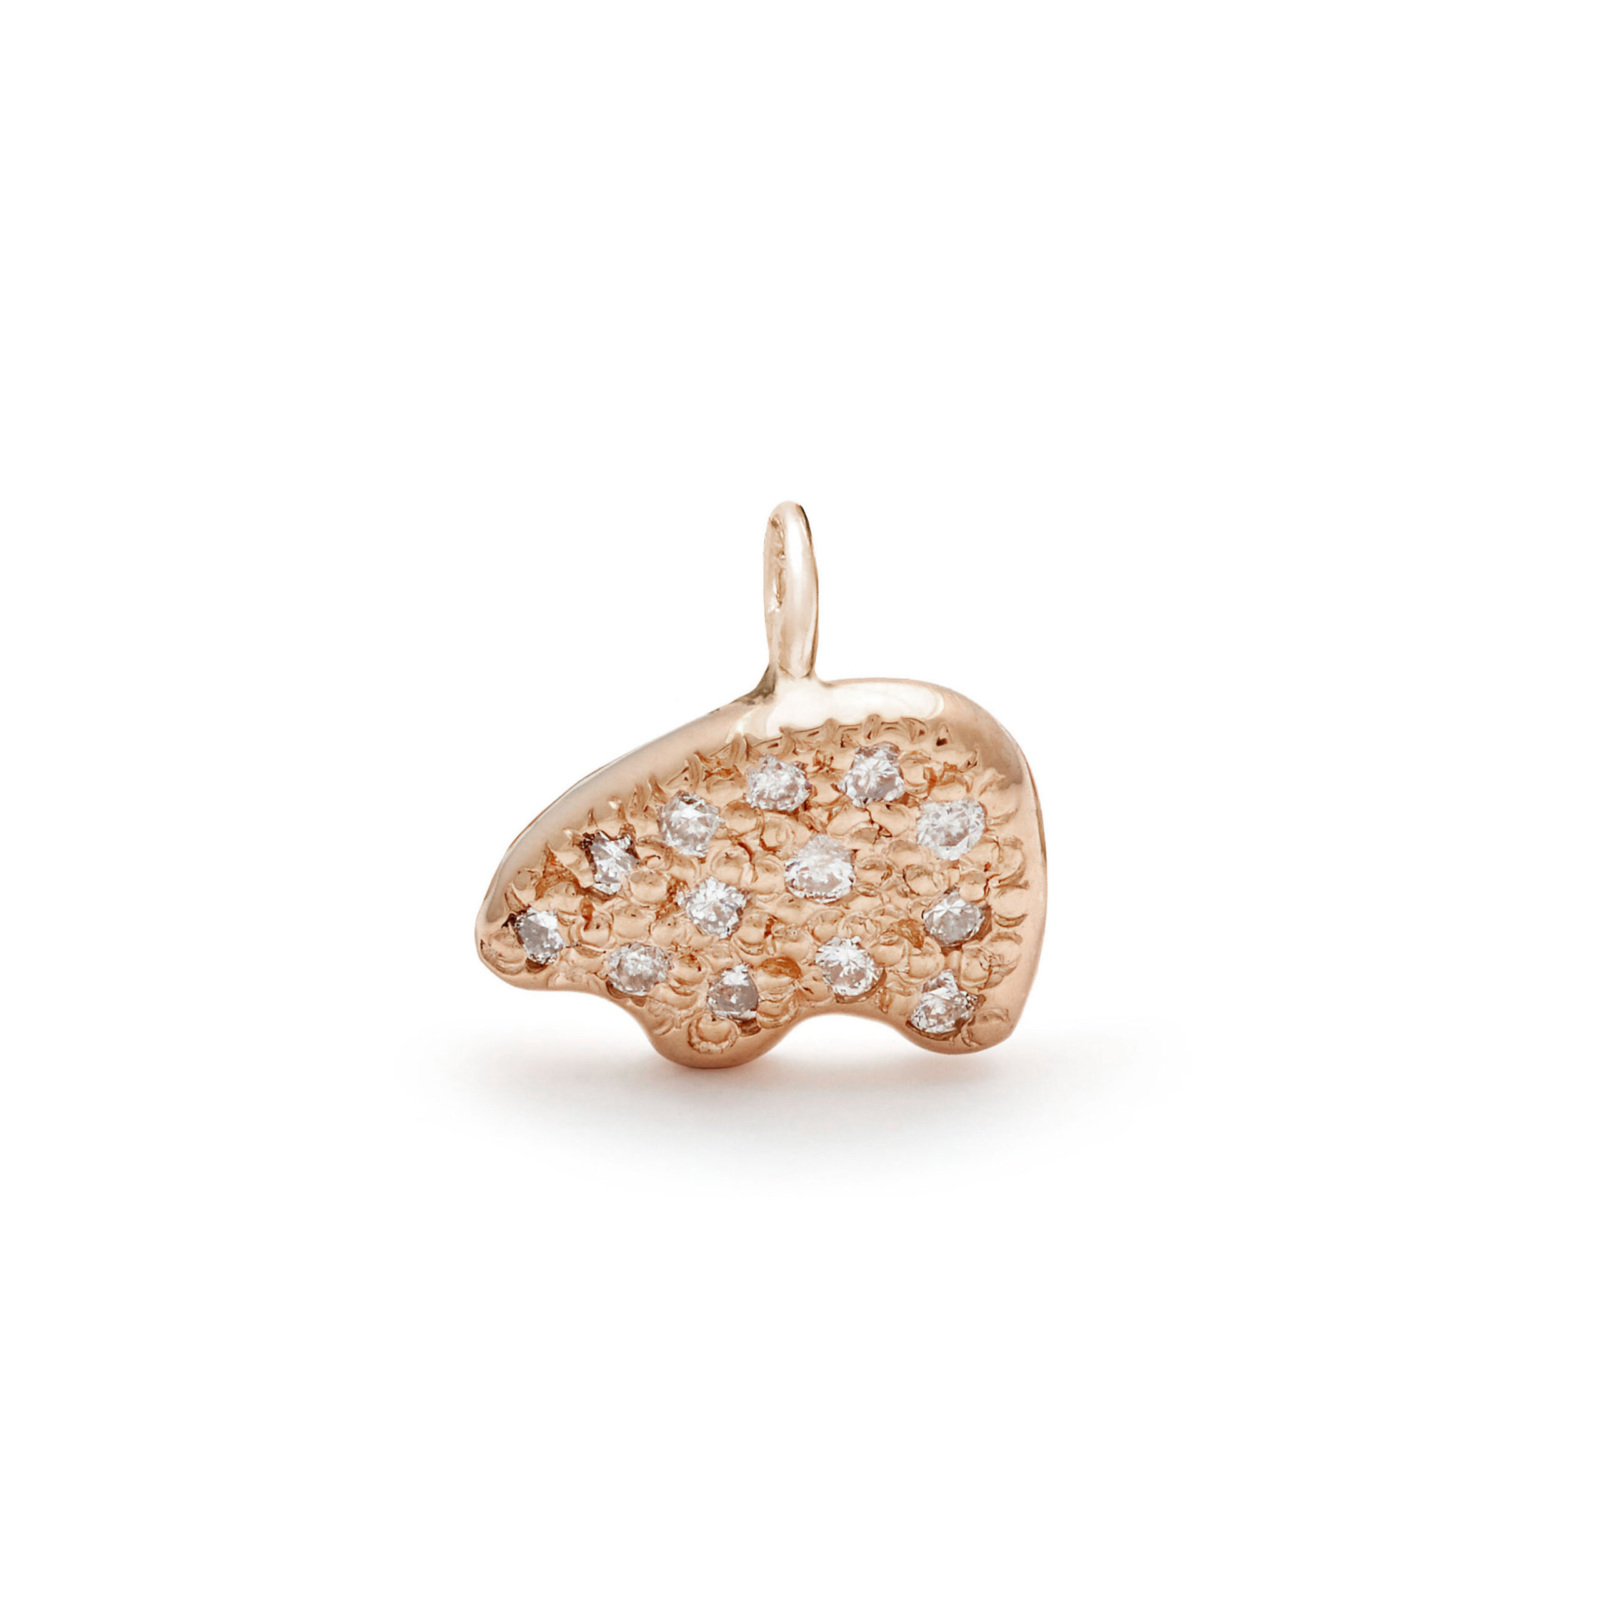 bear charm jewelry with diamond melee - pink gold